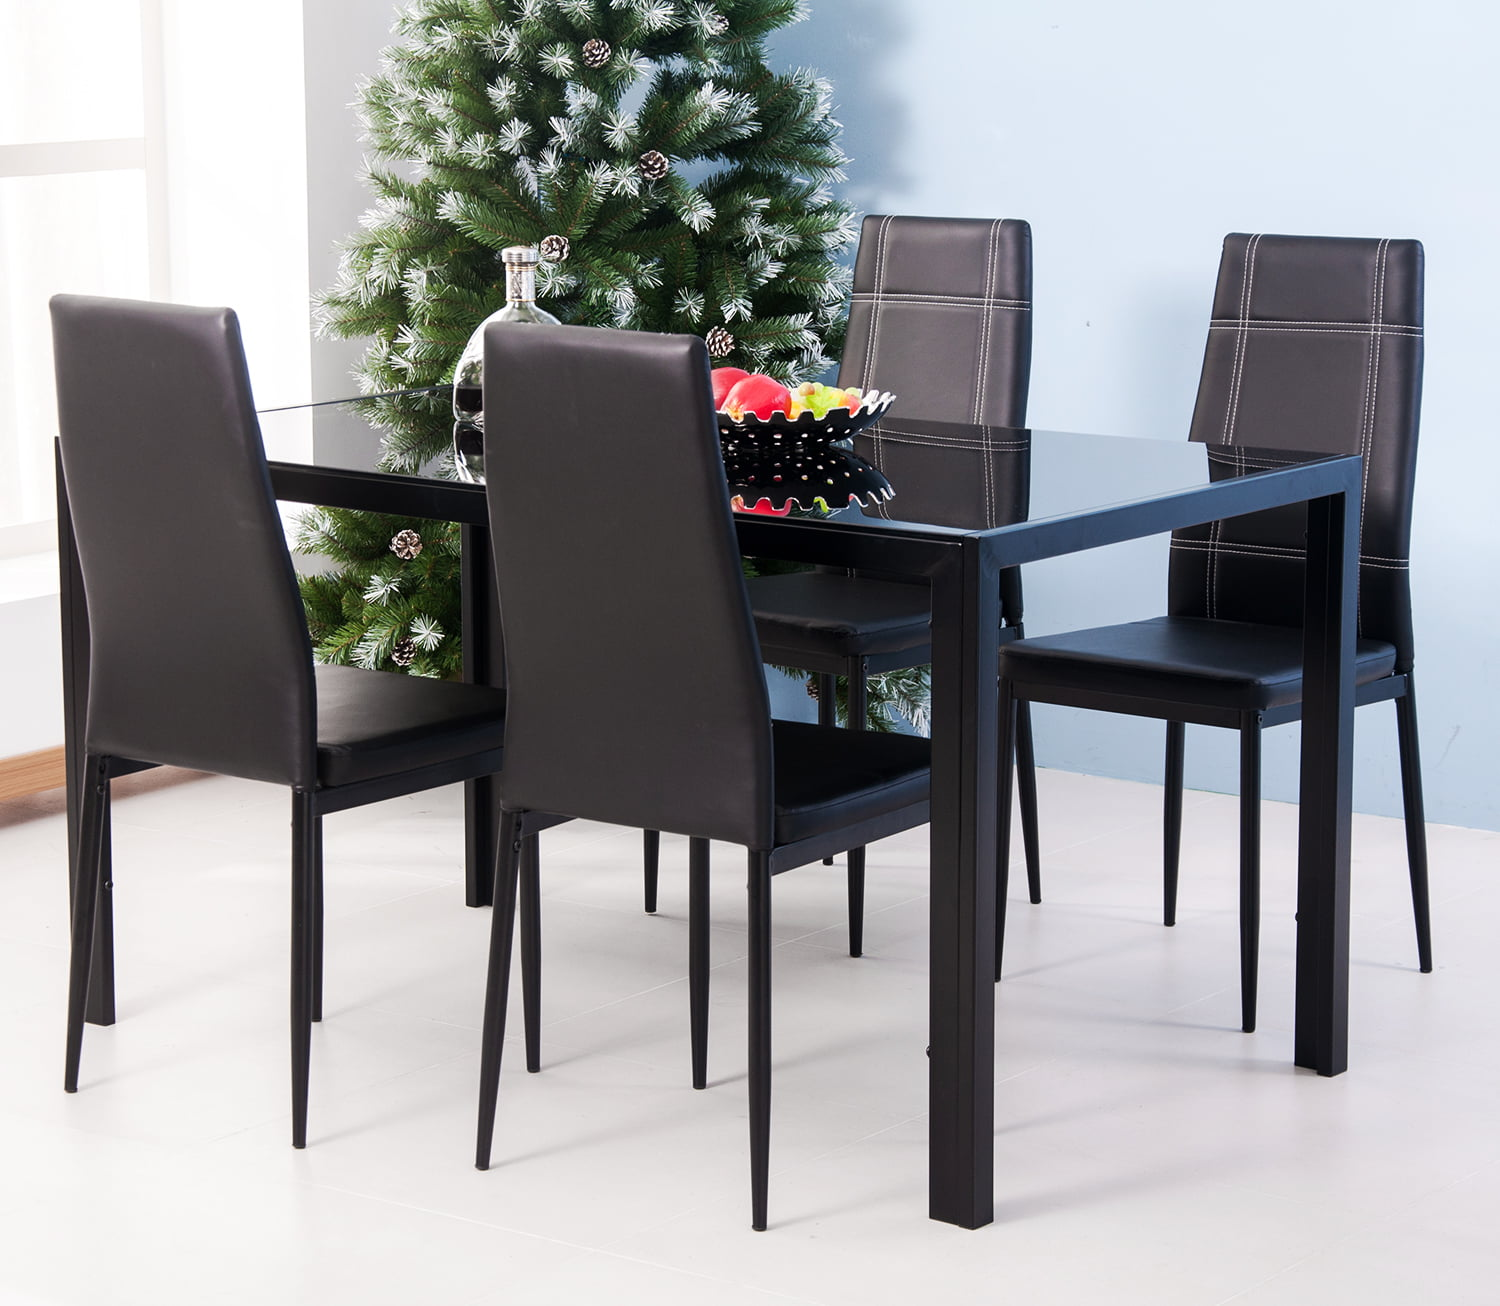 Dining Table Set For 7 Modern Kitchen Tables And Chairs Kitchen Table Set Glass Top Table With 6 Leather Chairs Breakfast Furniture Dining Room Table Set For Small Spaces Kitchen Dining Room